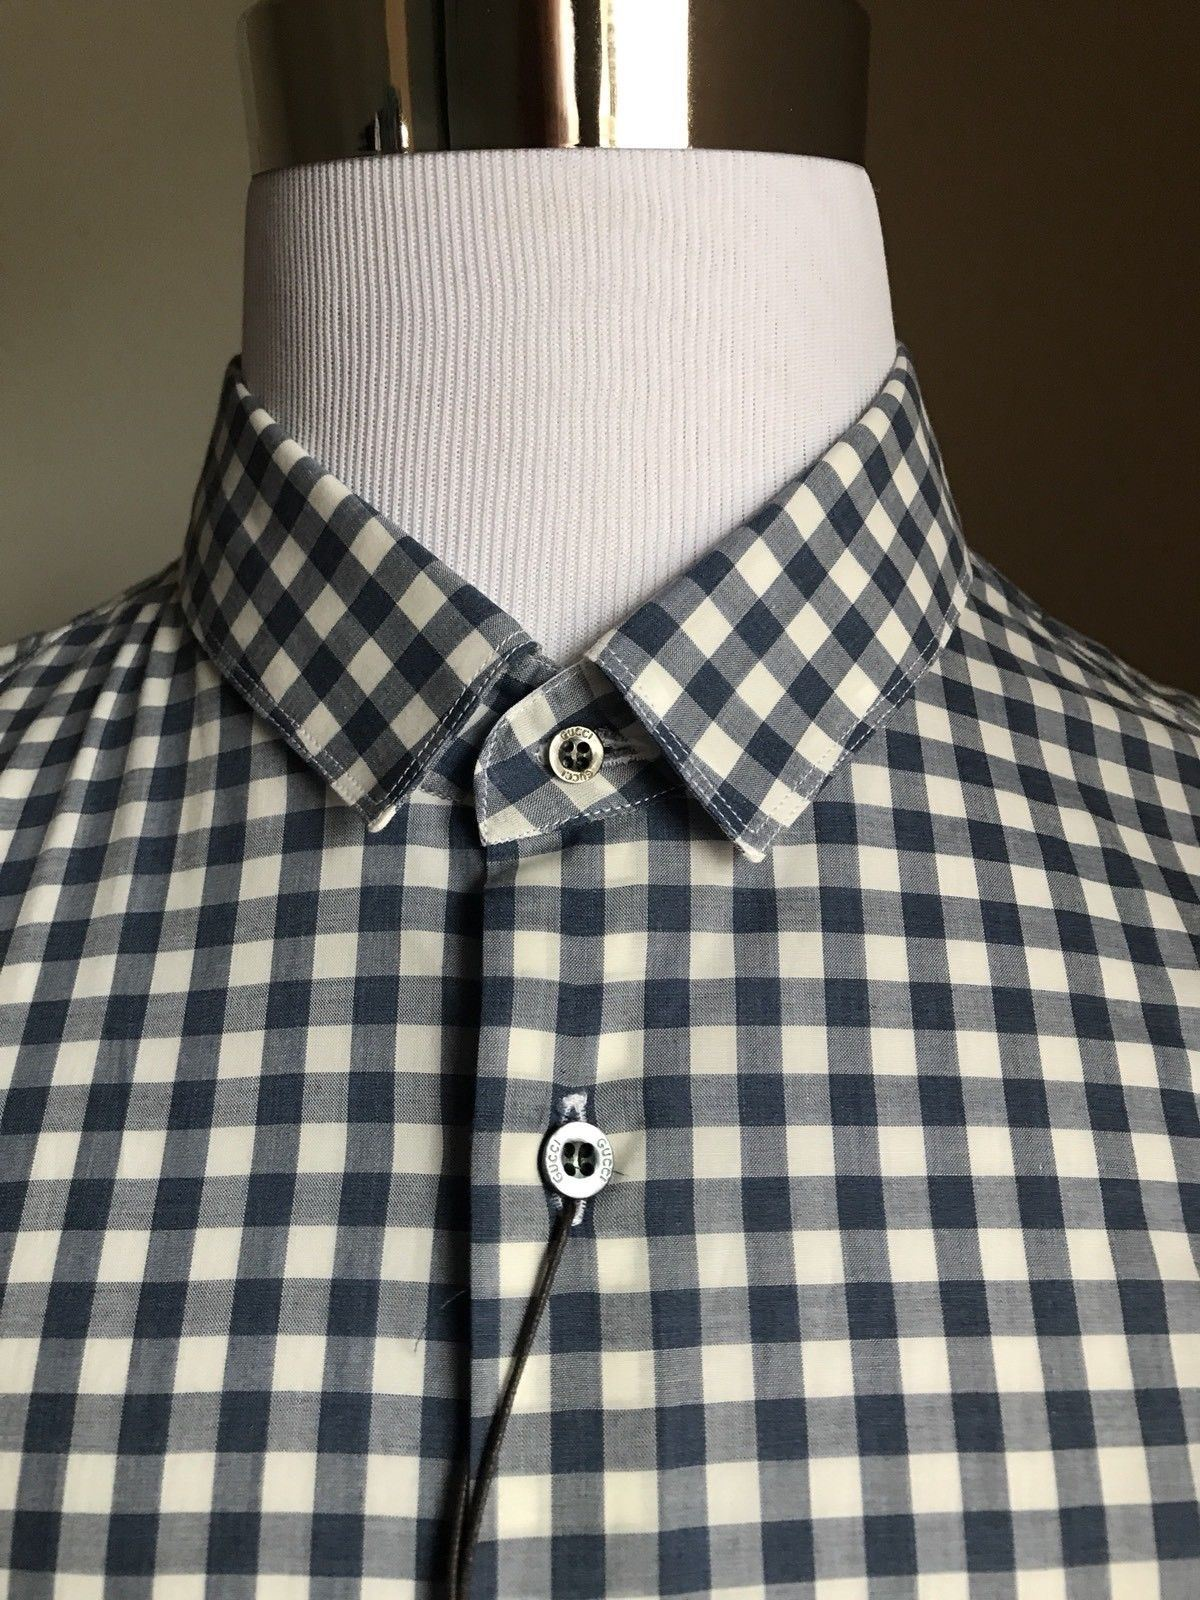 New $675 Gucci Men's Dress Shirt Skinny Blue 44/17.5 Italy - BAYSUPERSTORE